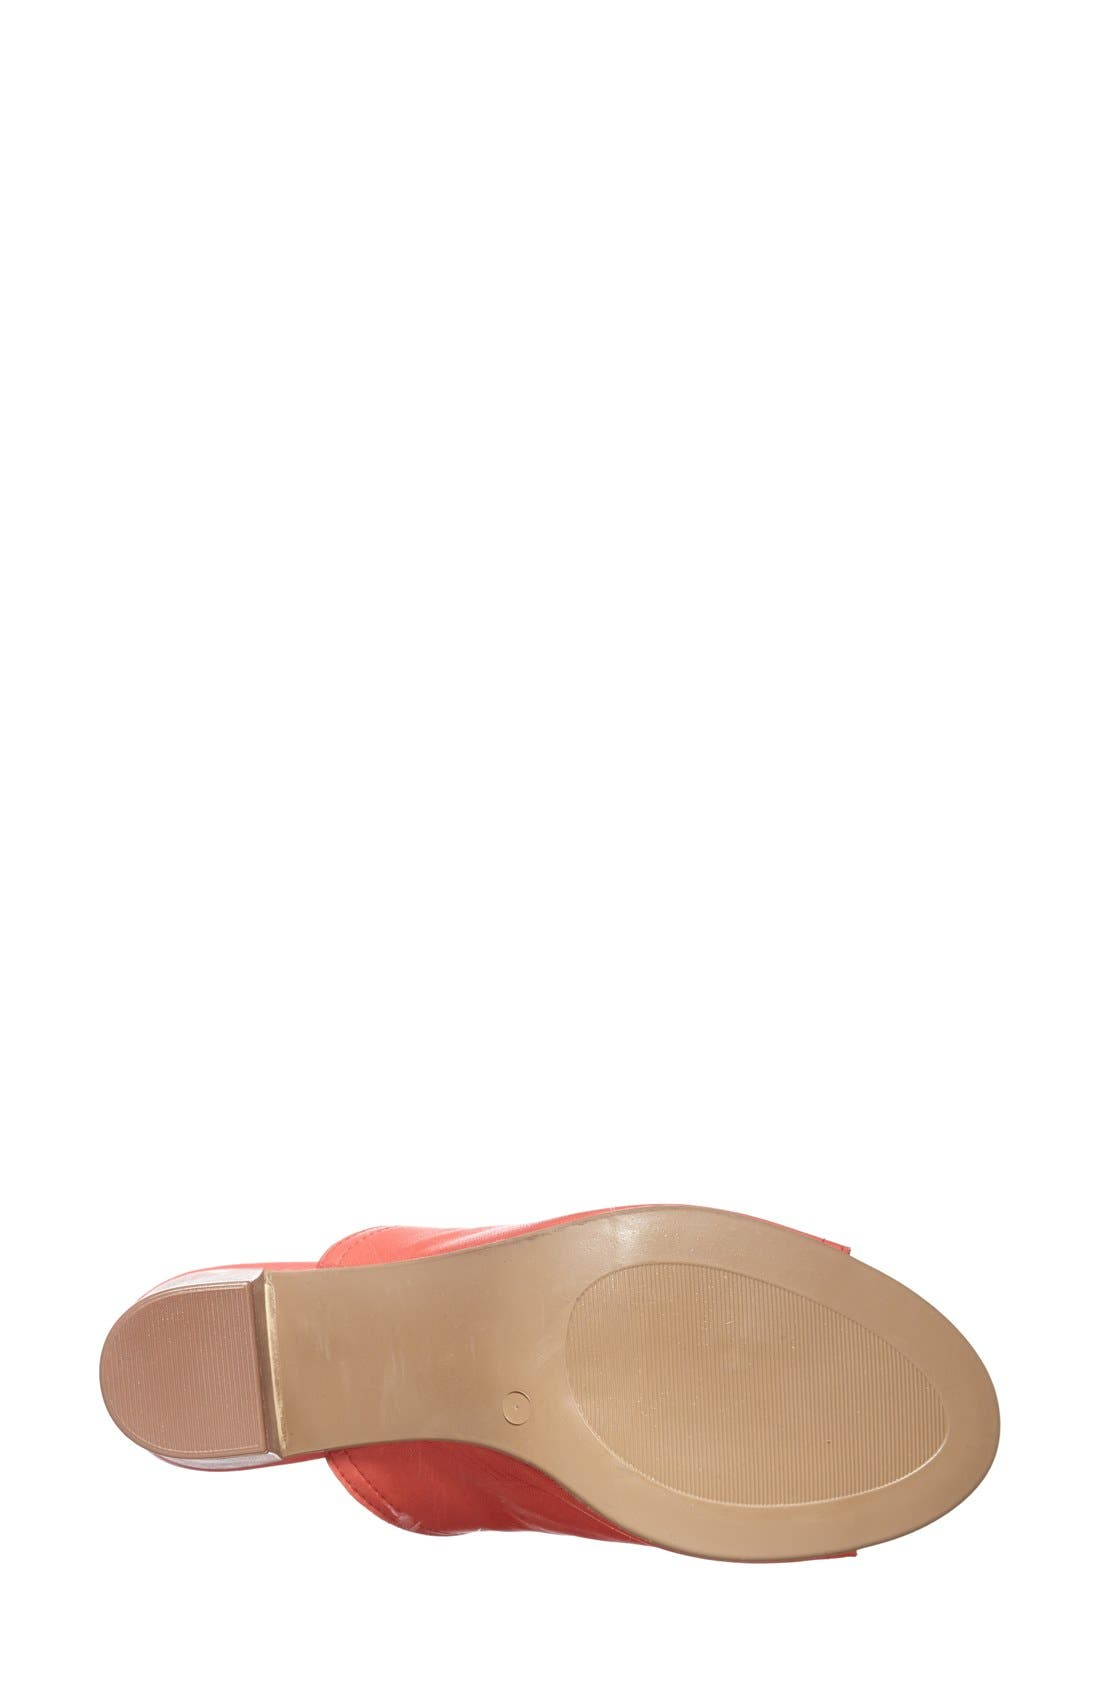 'Arno' Leather Mule,                             Alternate thumbnail 15, color,